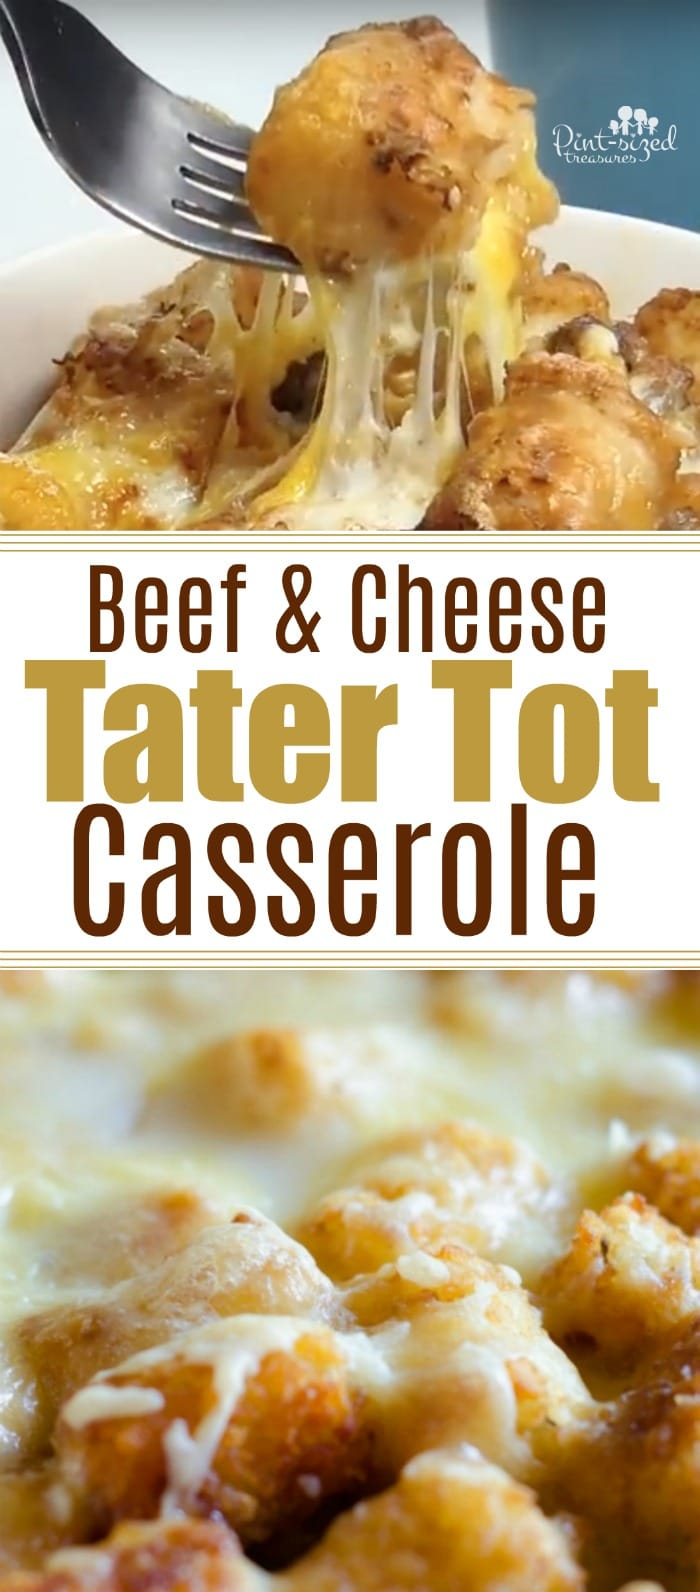 Tater tot fans will LOVE this beef and cheese tater tot casserole that's packed with spices, homemade cream sauce, cheese, beef and tater tots! Indulge in a comfort food ,family-style casserole! #casseroles #tatertotcasserole #heartycasserole #familymeals #easydinneridea #easydinnerrecipe #comfortfood #familytable #cheesymeals #cheesycasserole #easycasserole